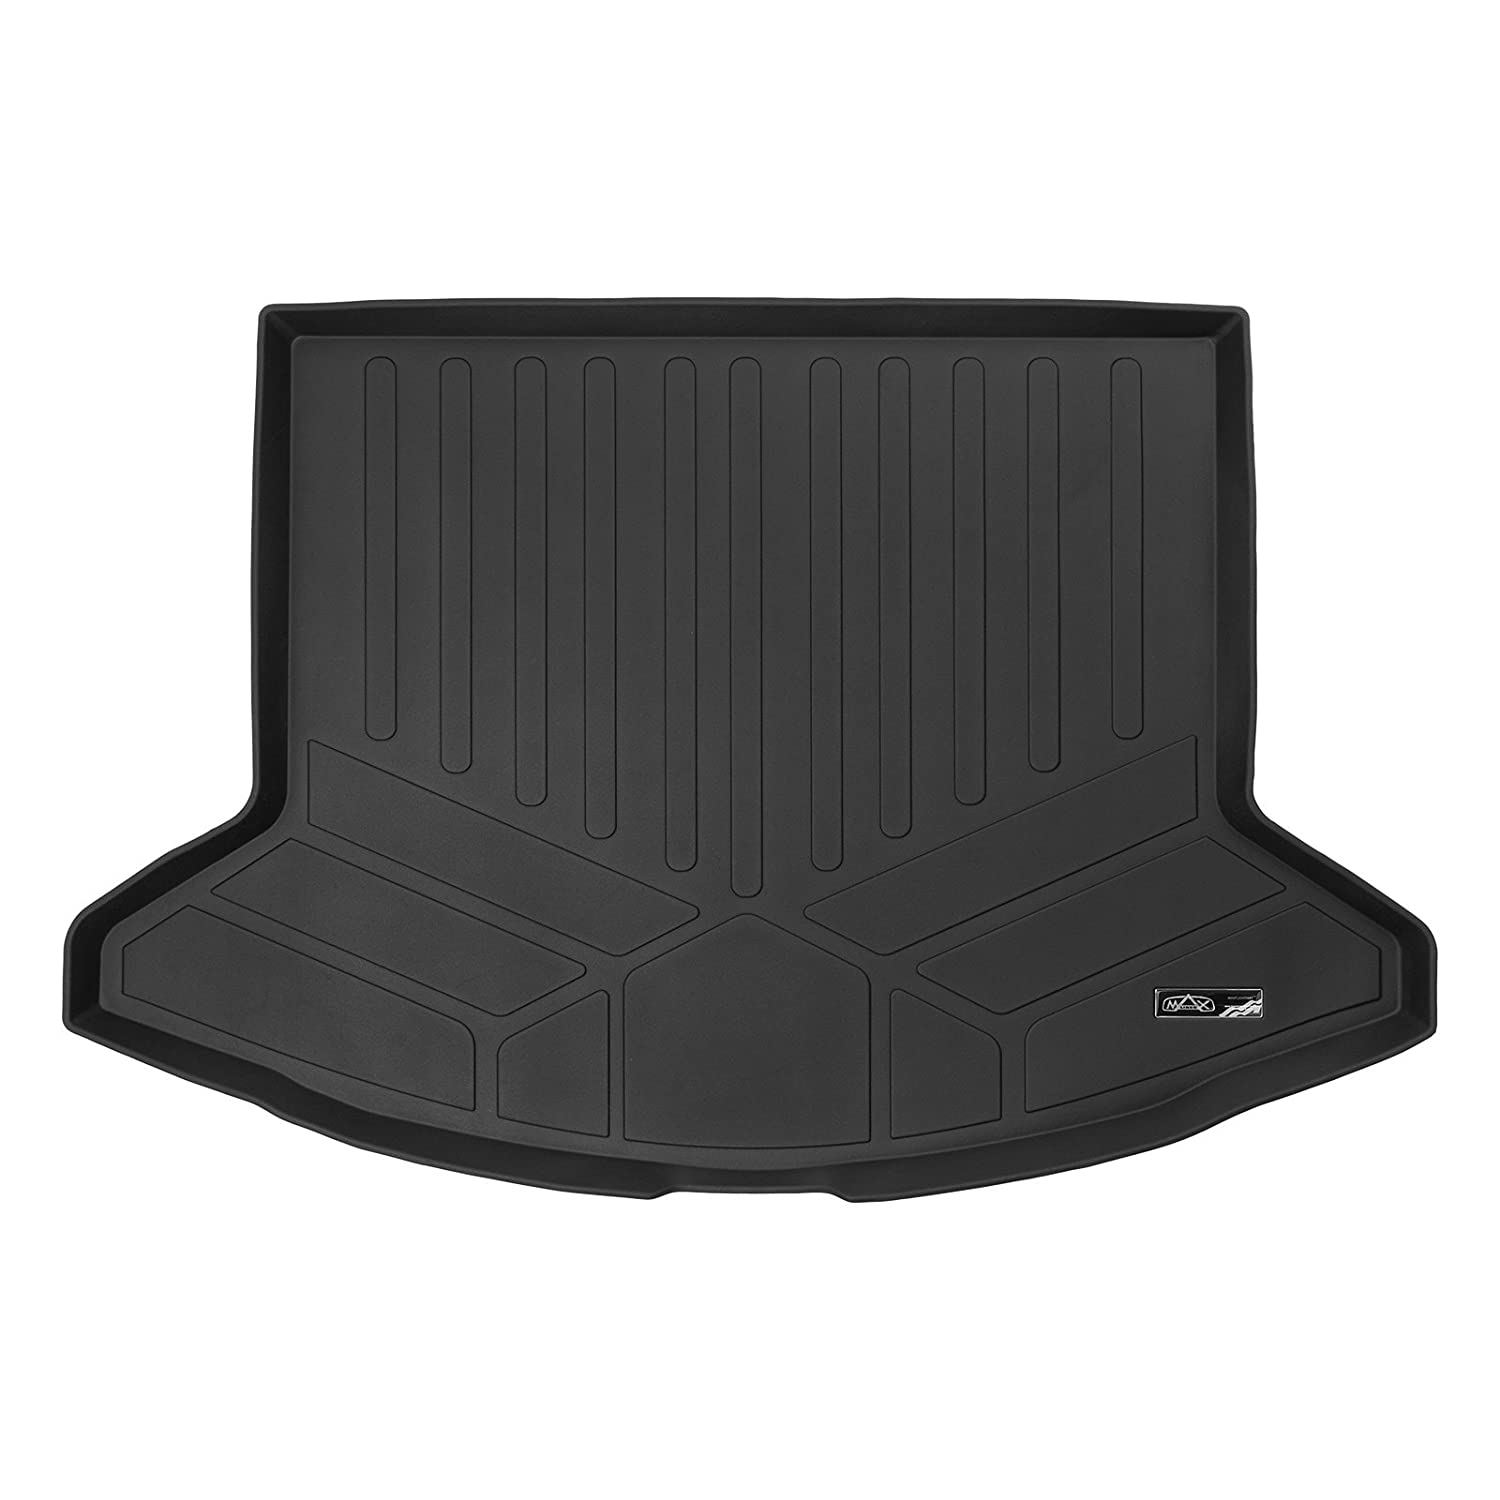 MAXLINER D0301 Black All Weather Cargo Liner (for Mazda CX-5 2017), 1 Pack